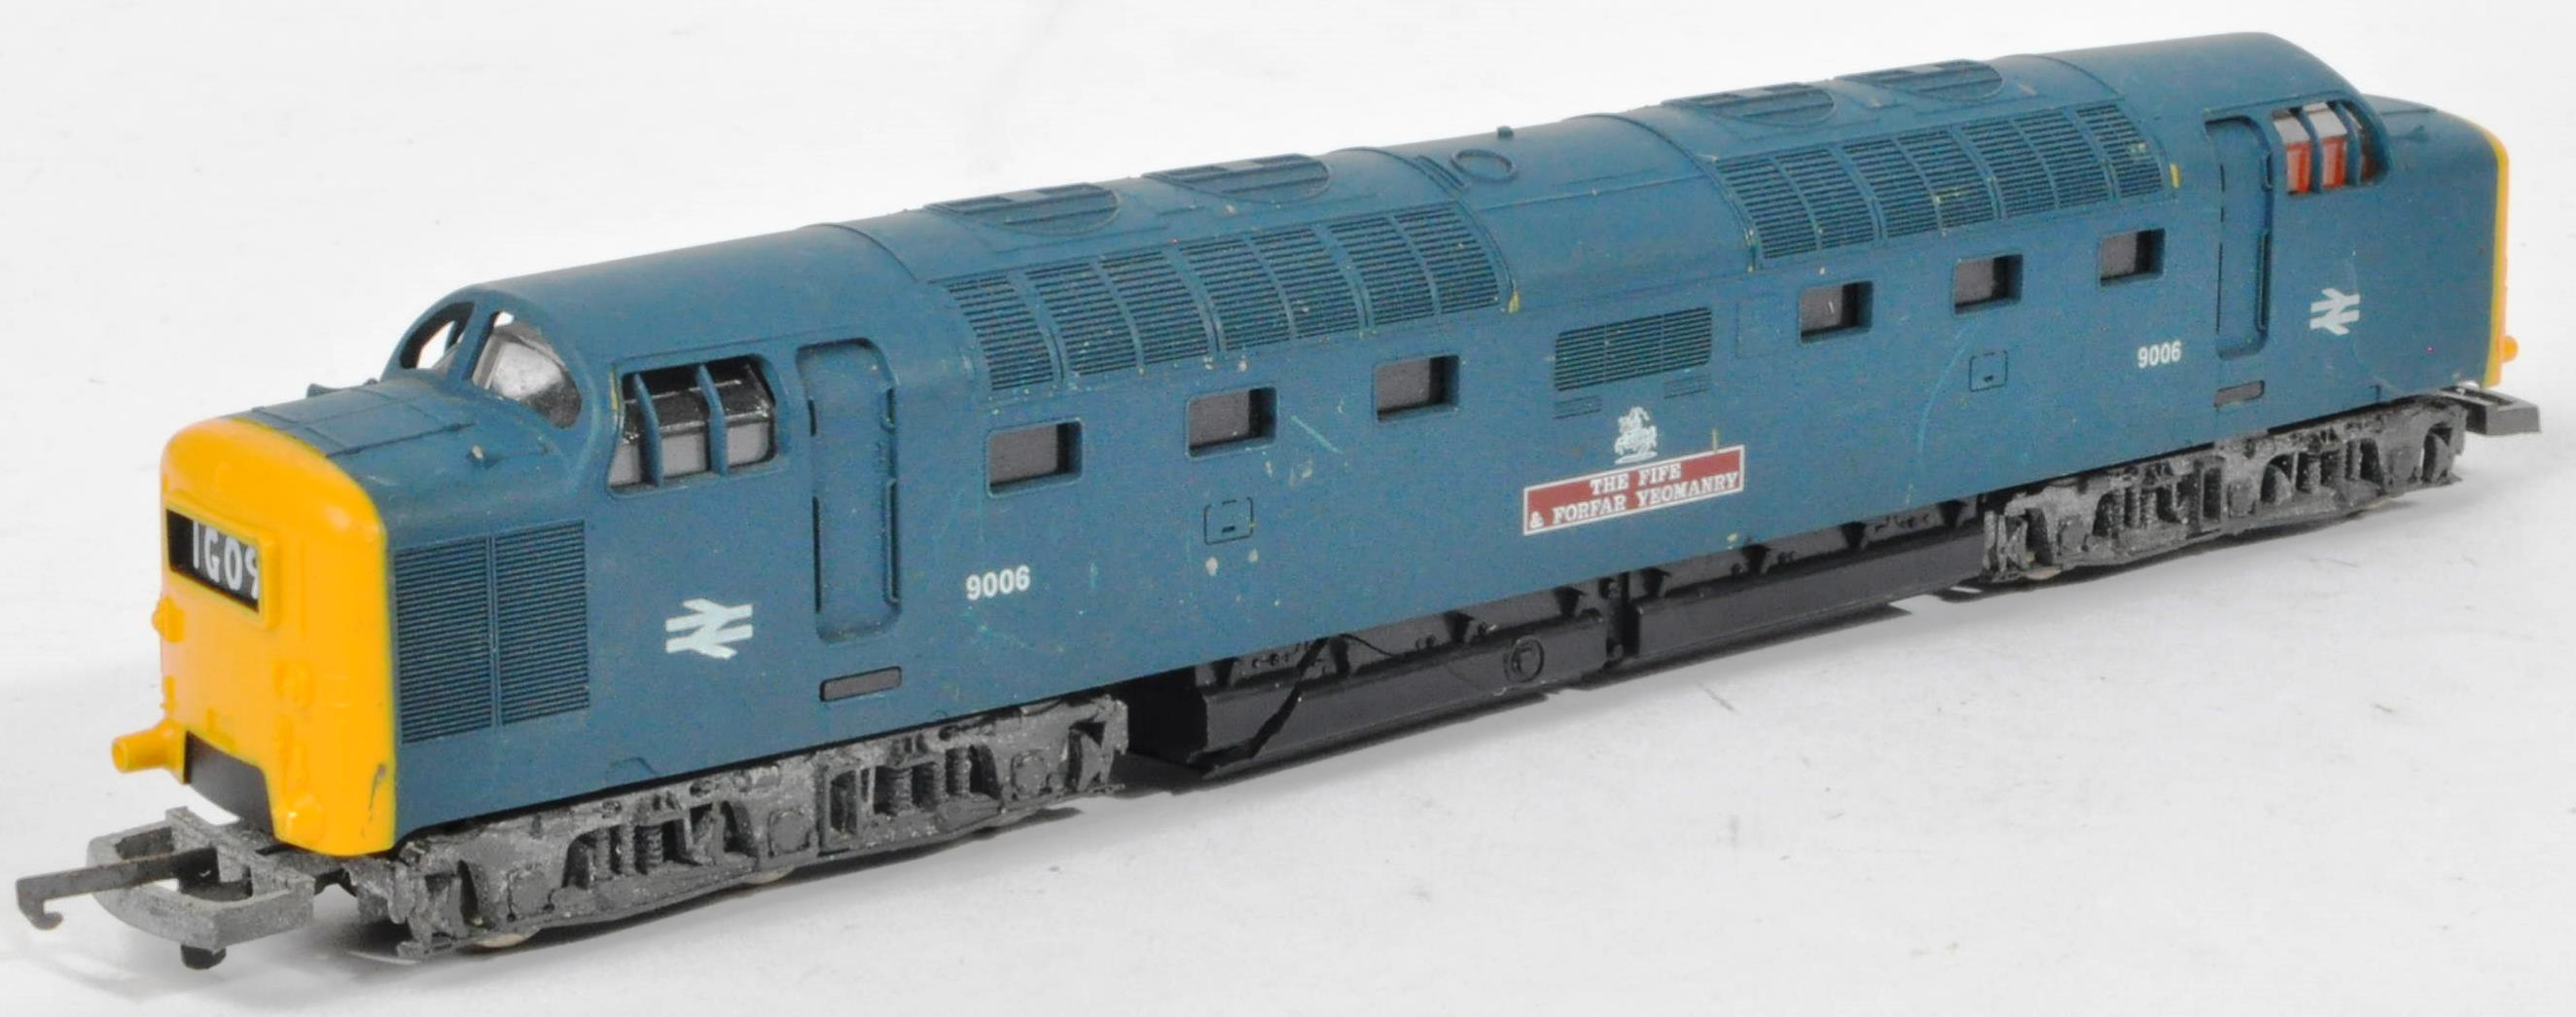 COLLECTION OF ASSORTED DIESEL 00 GAUGE TRAINSET LOCOMOTIVES & CARRIAGES - Image 7 of 10